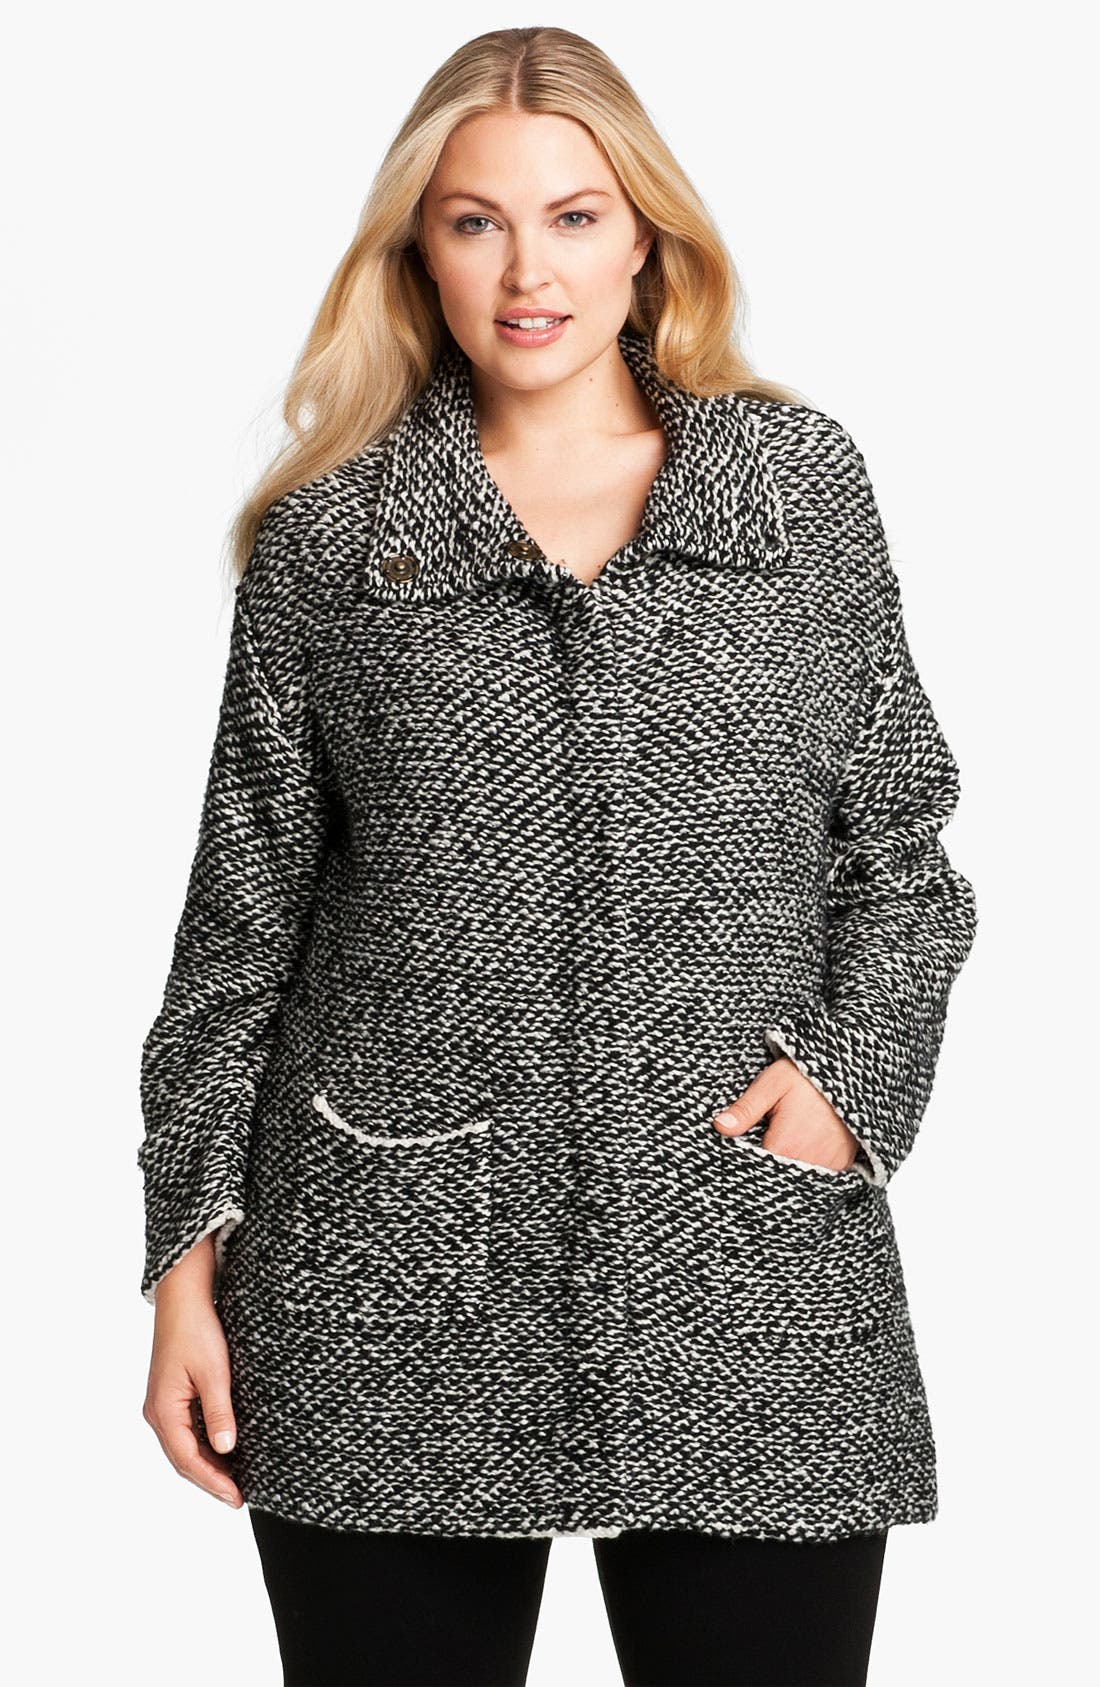 Alternate Image 1 Selected - Eileen Fisher Organic Cotton Jacket (Plus)